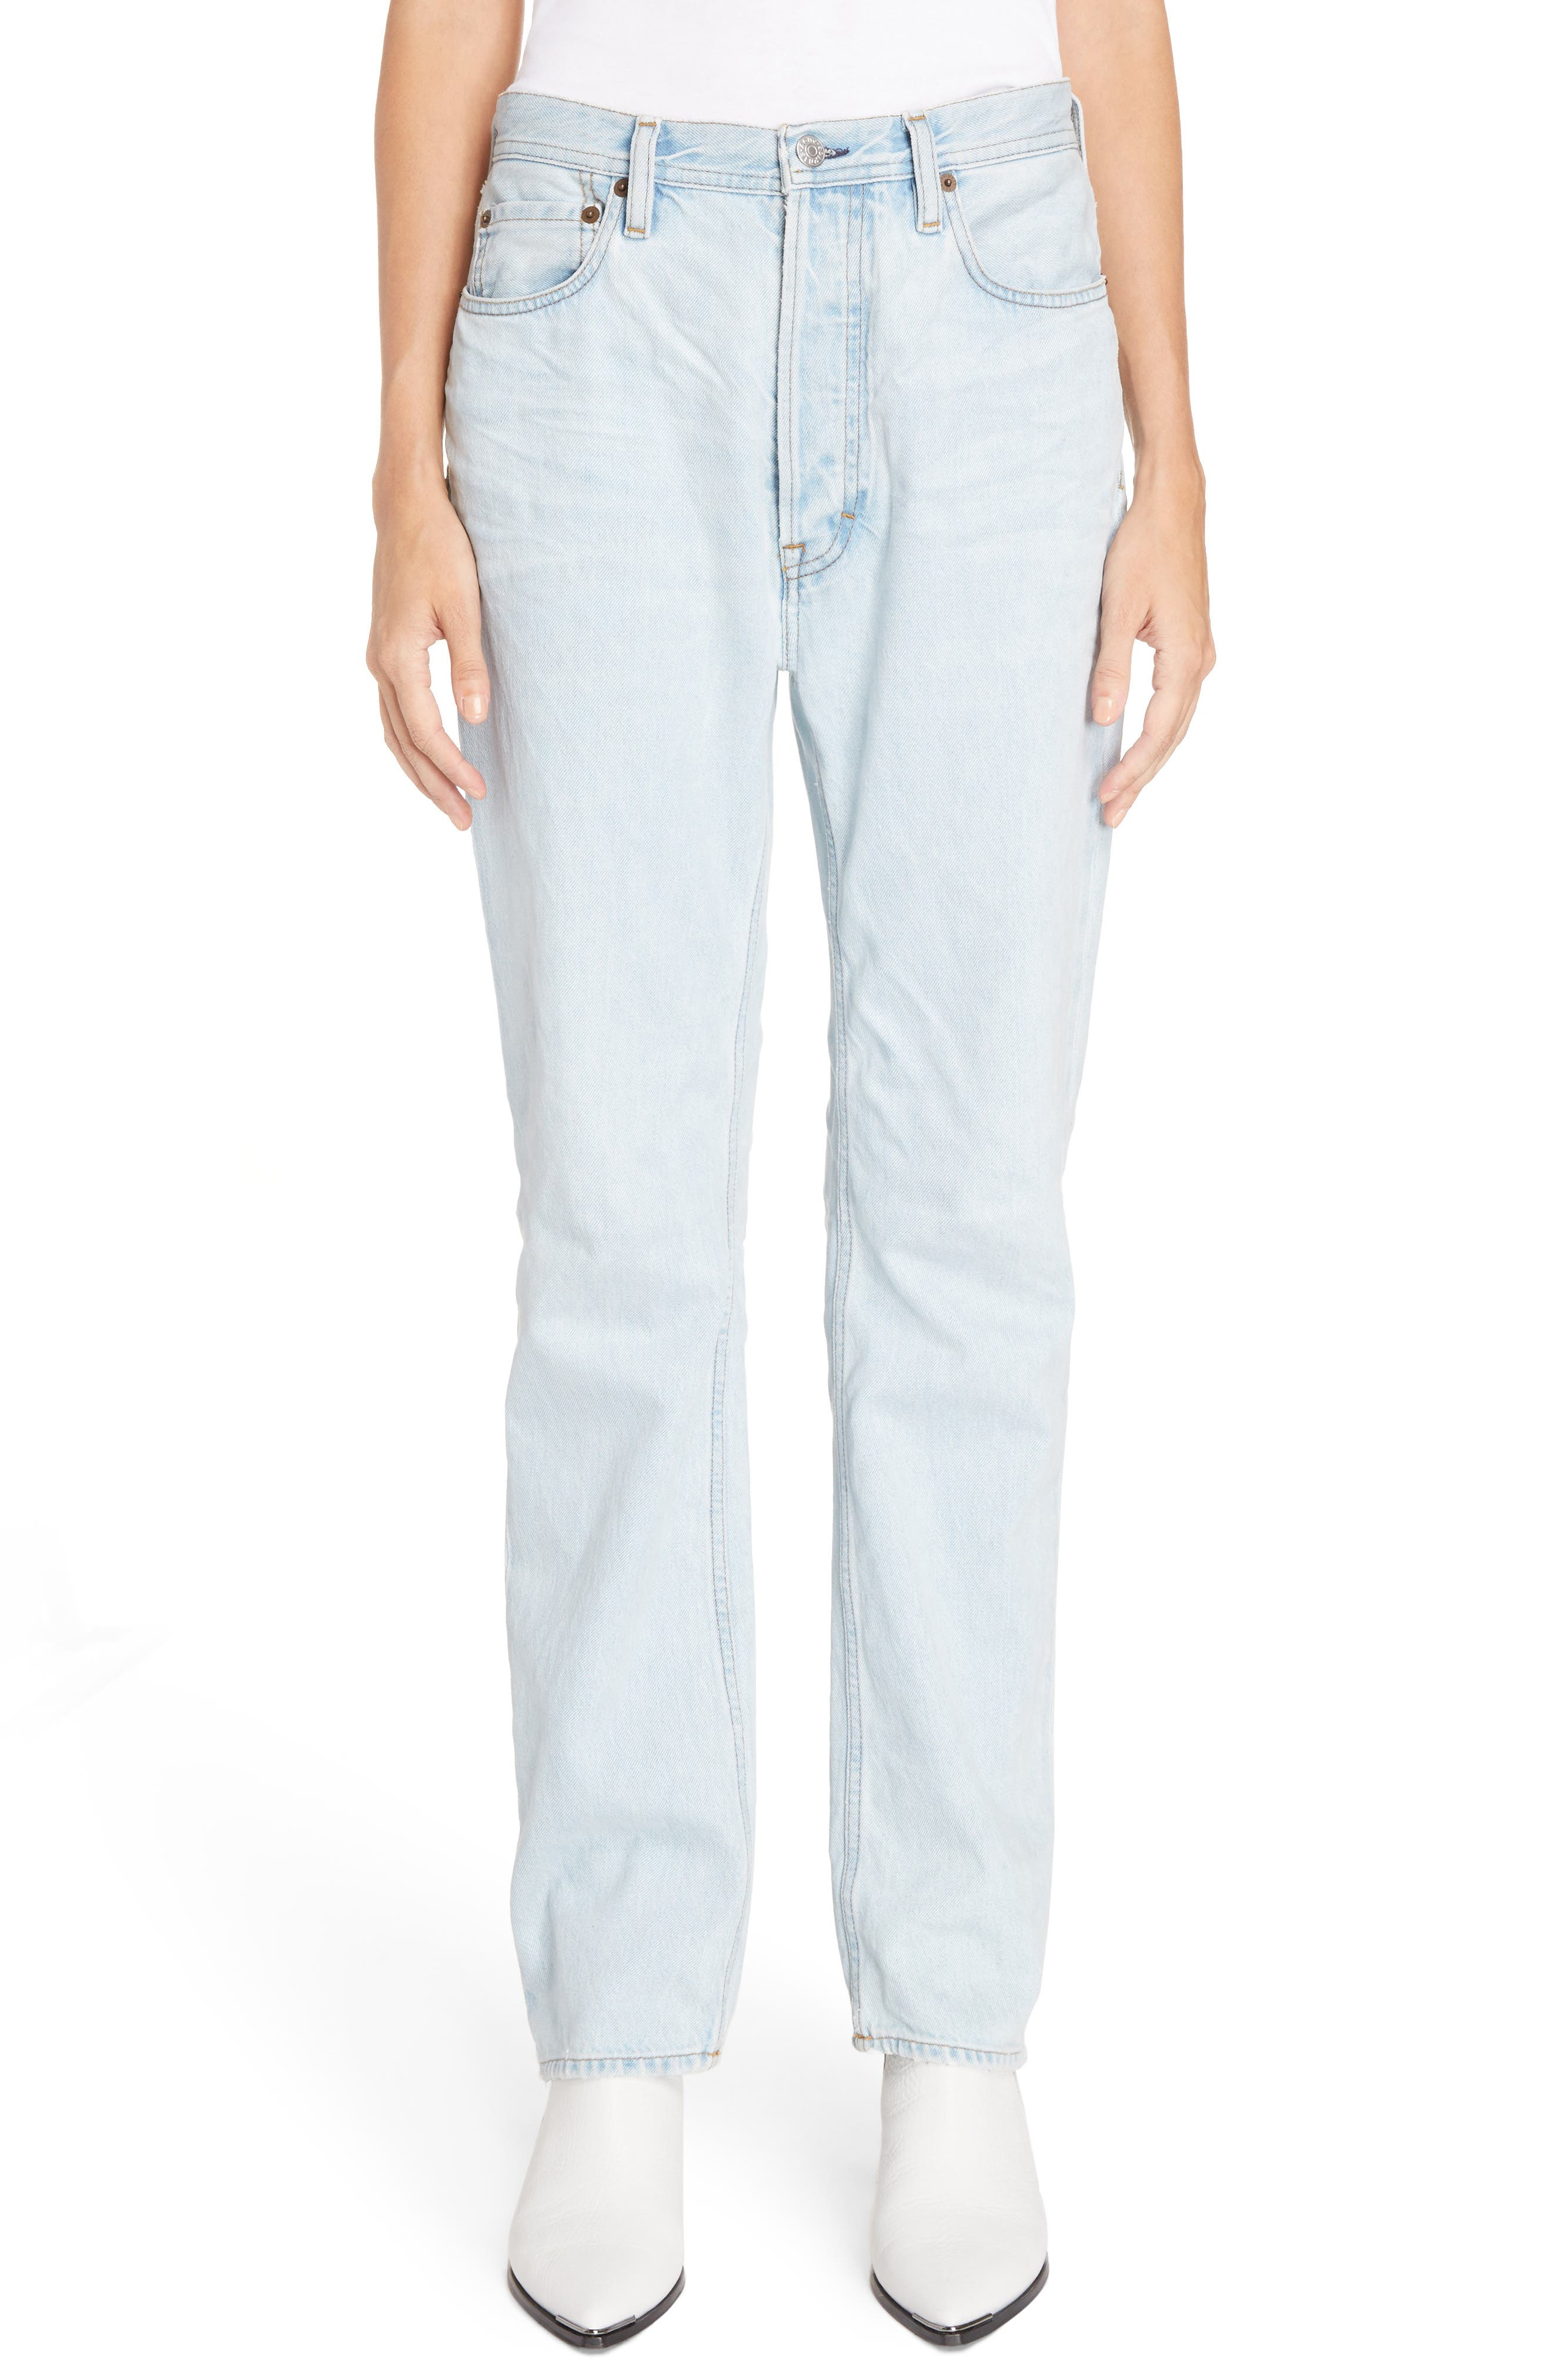 Log Relaxed Leg Jeans,                         Main,                         color, 400